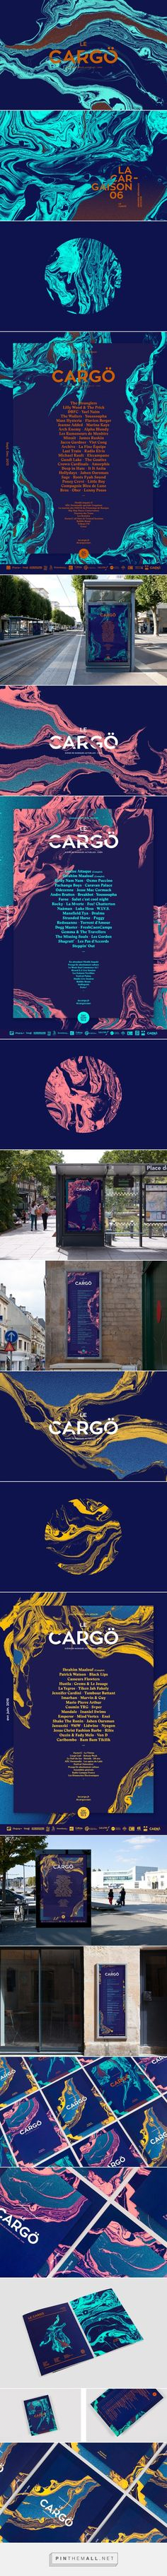 Le Cargö Concert Hall Branding by Murmure | Fivestar Branding Agency – Design and Branding Agency & Curated Inspiration Gallery